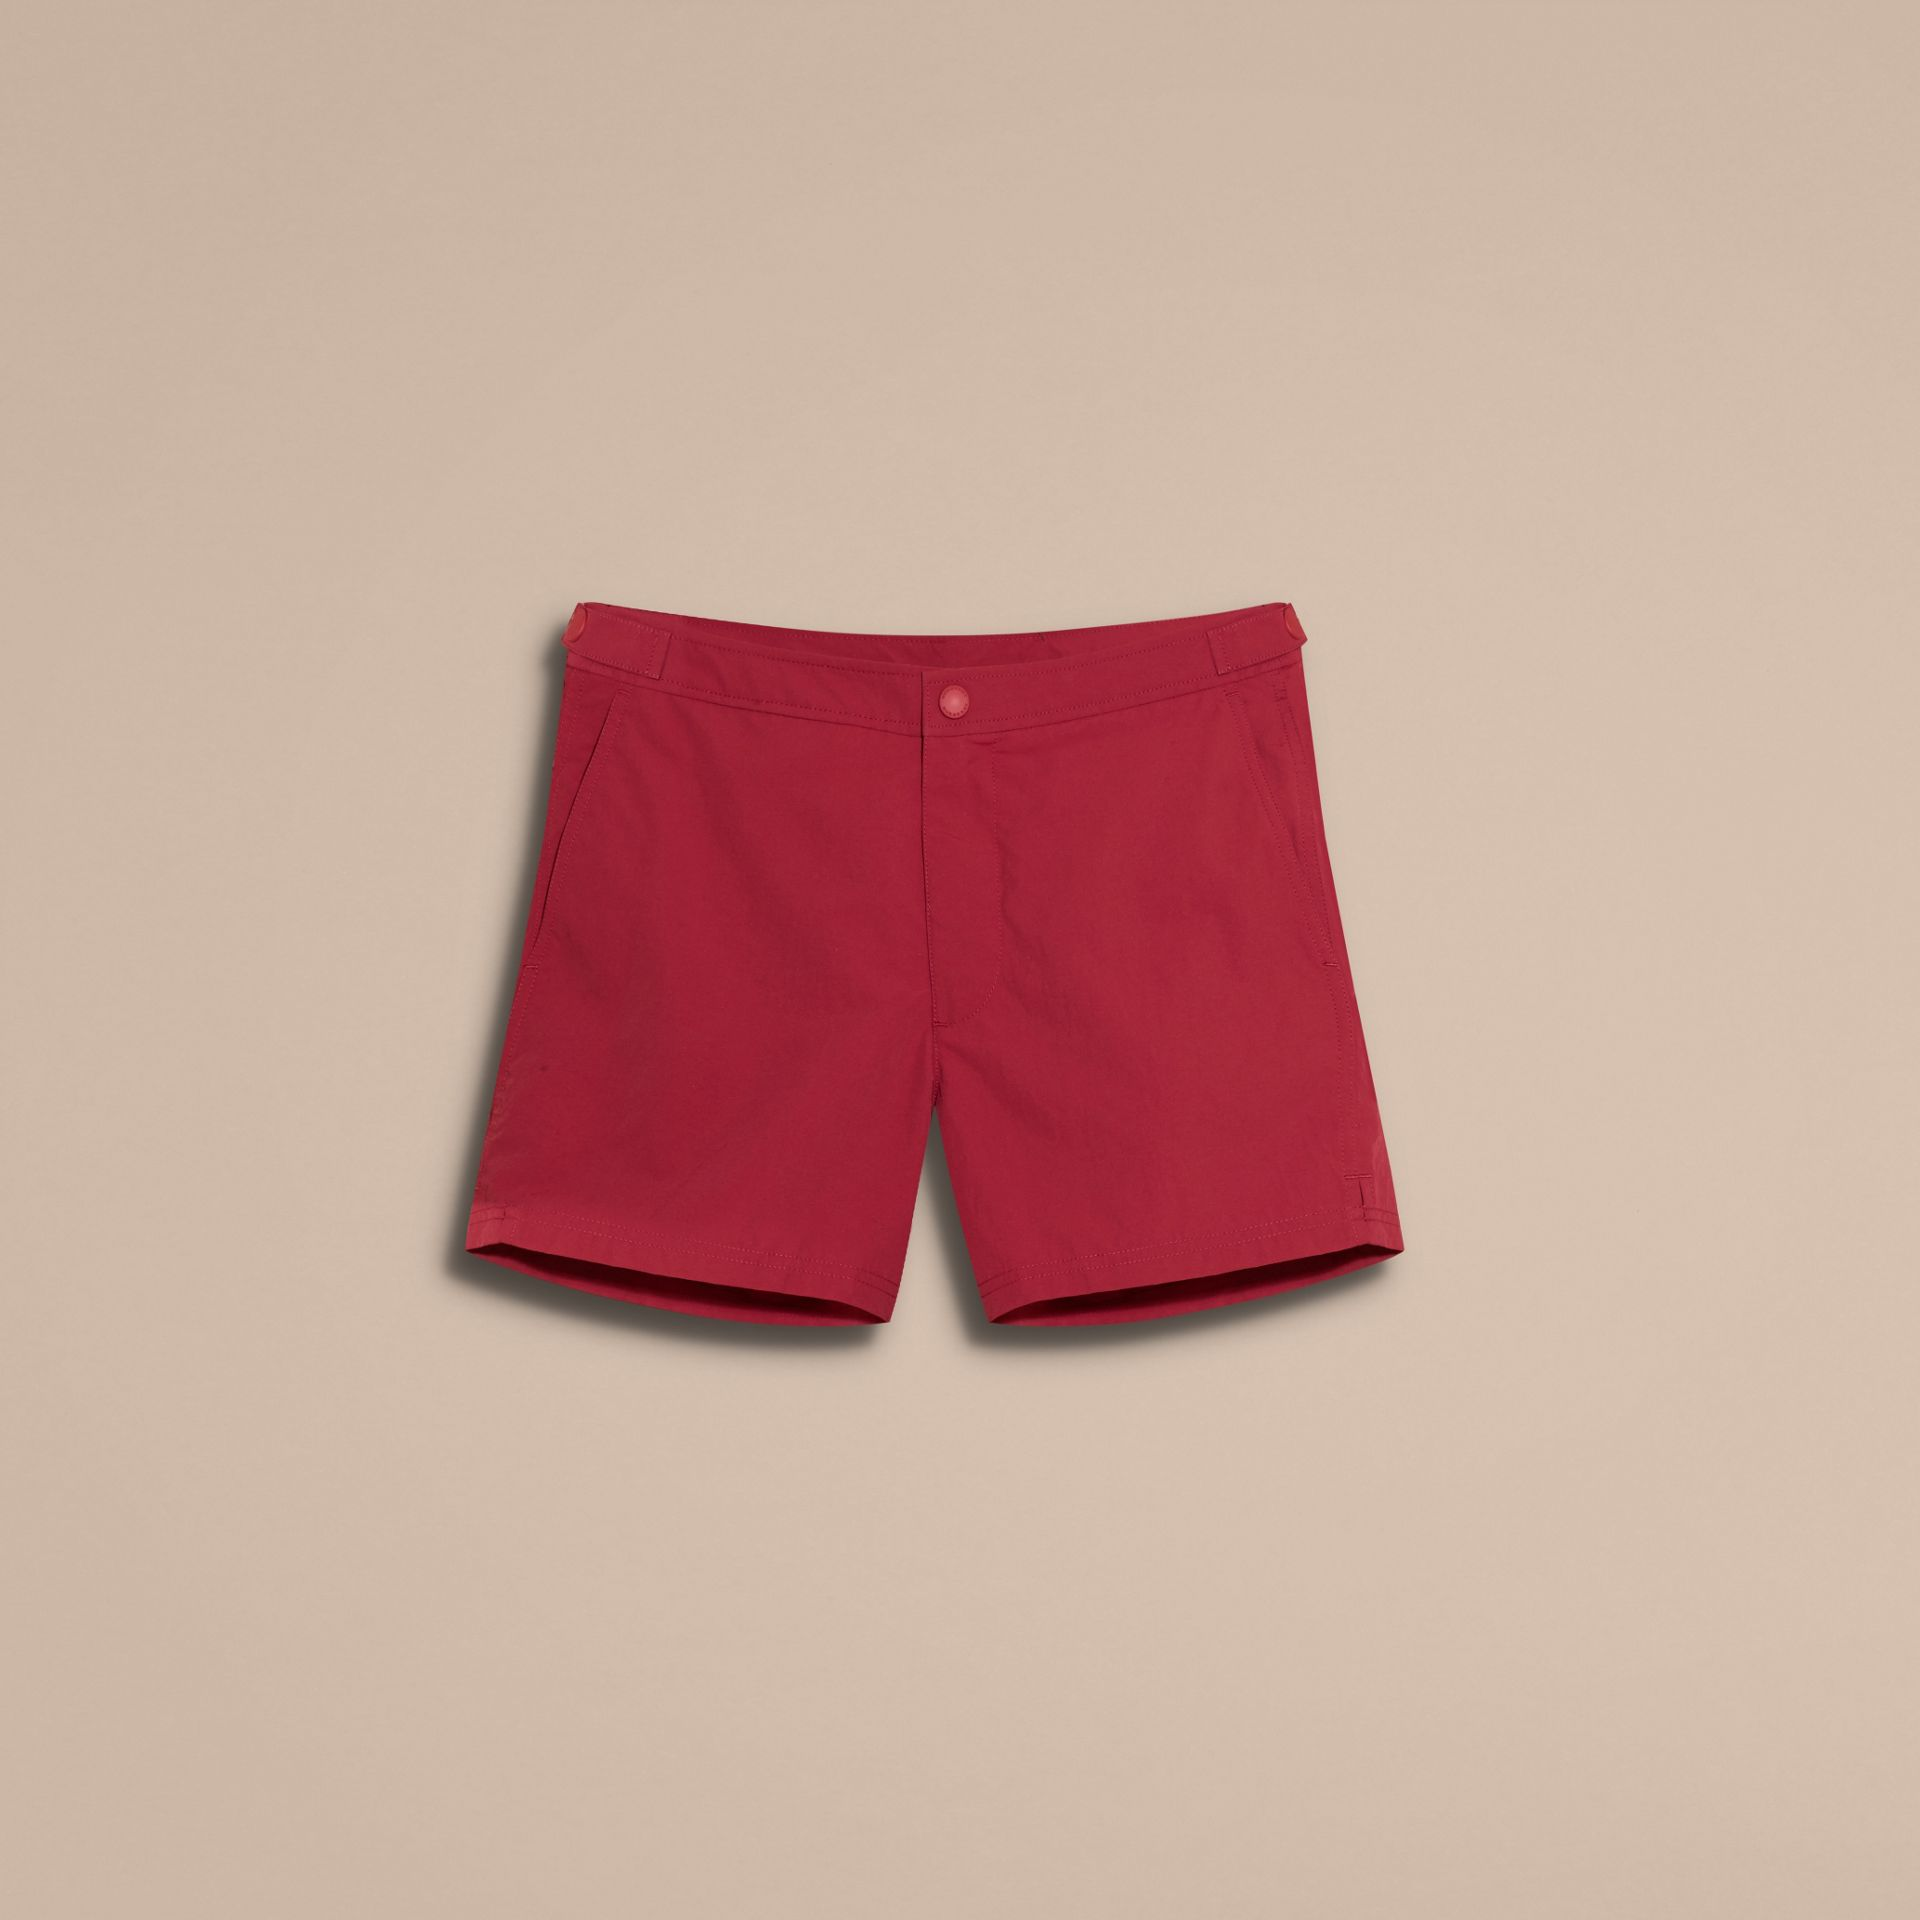 Tailored Swim Shorts in Parade Red - Men | Burberry - gallery image 4